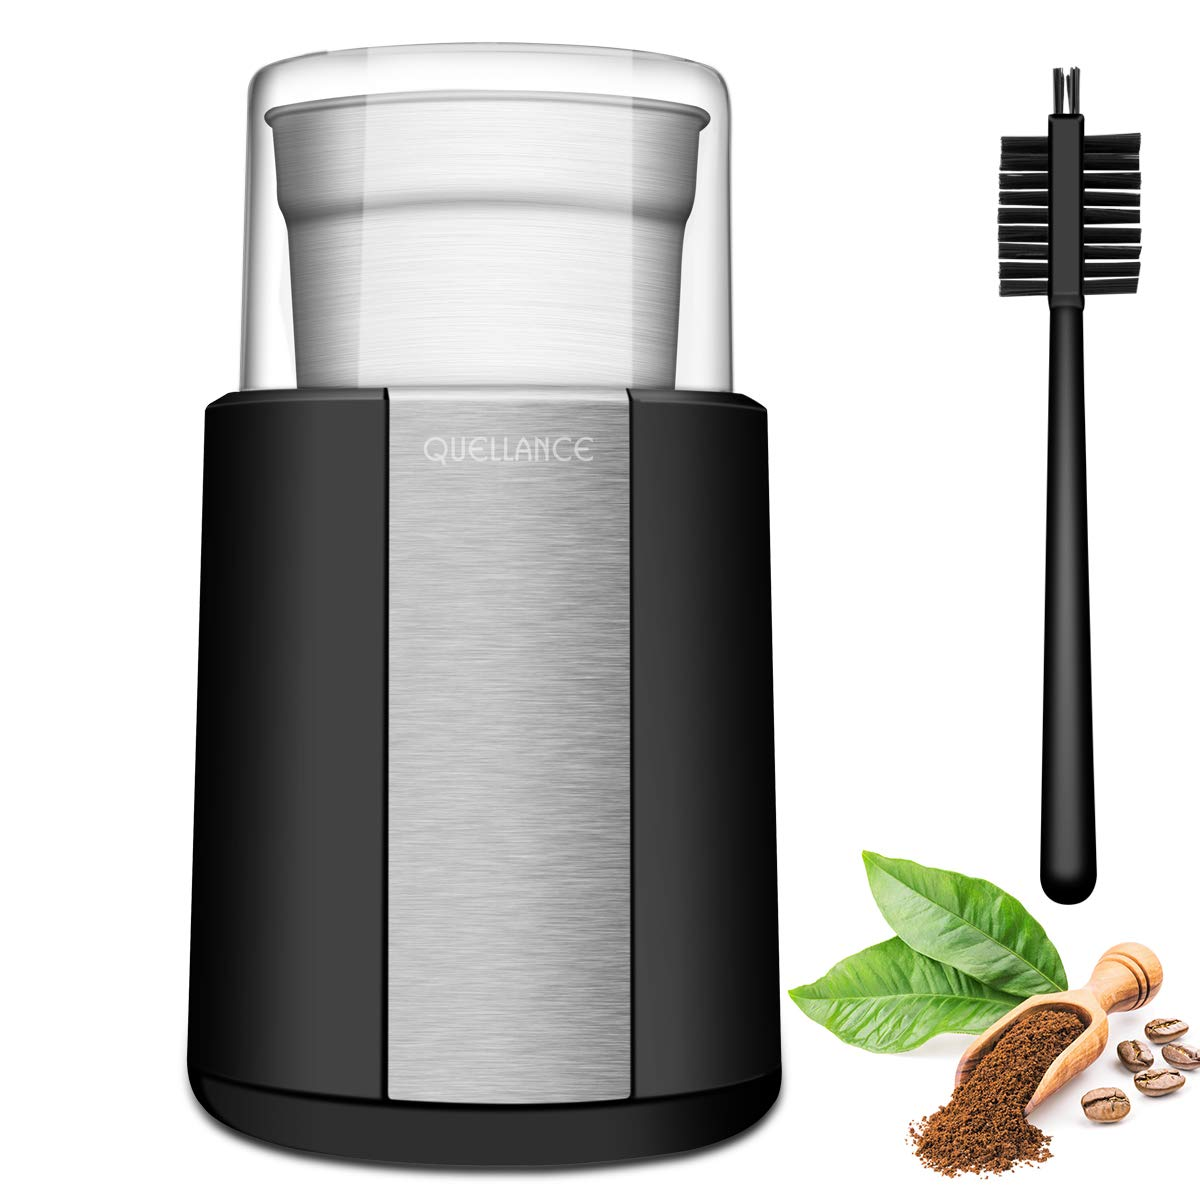 QUELLANCE Electric Coffee Grinder, Stainless Steel Blades Coffee and Spice Grinder with 2.5 Ounce Removable Cup, Powerful 200W Electric Mills for Most Efficient Grinding, Black